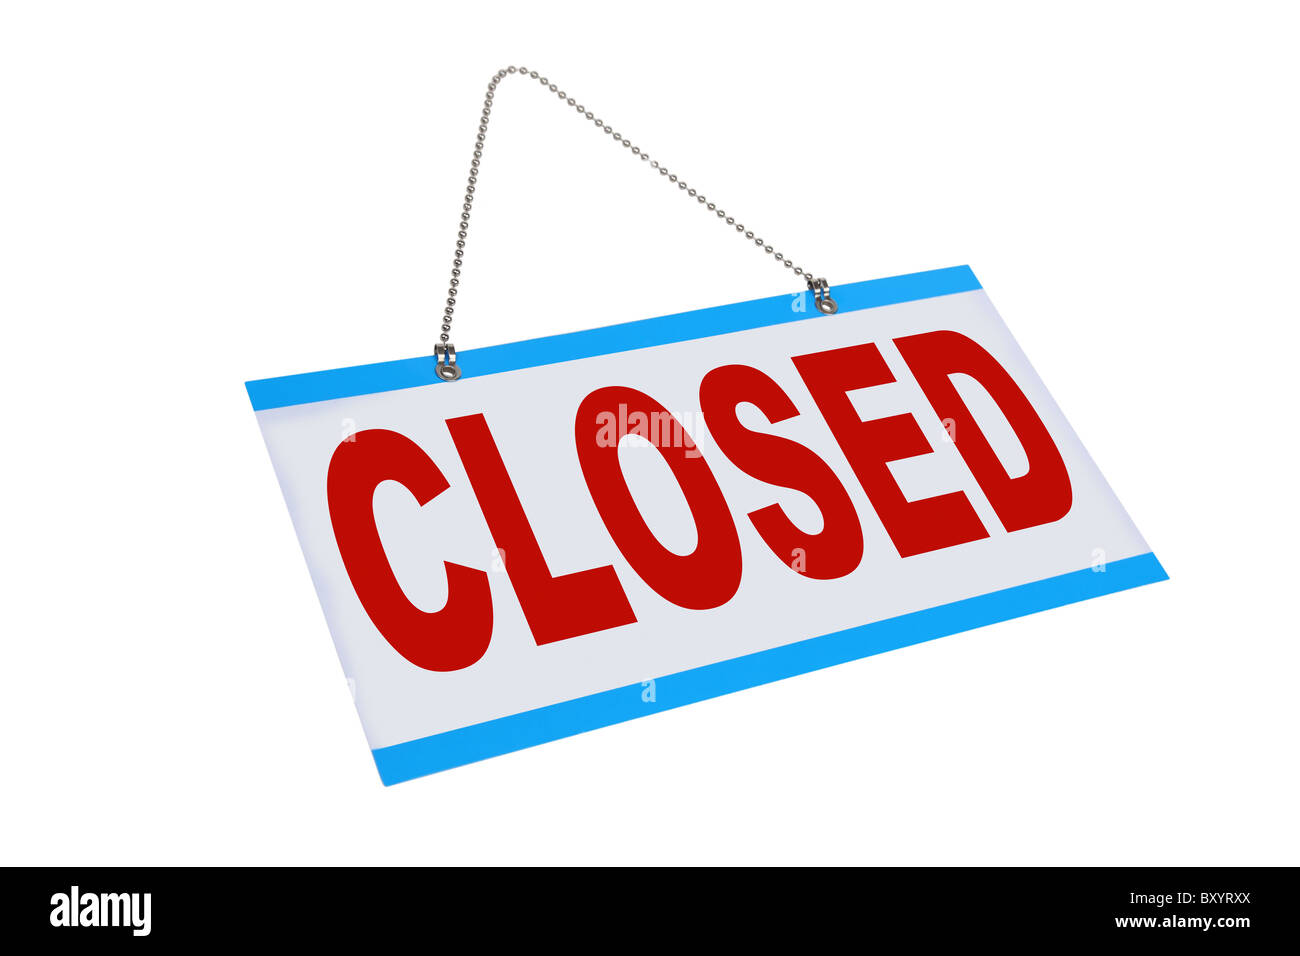 Closed sign on white background Photo Stock